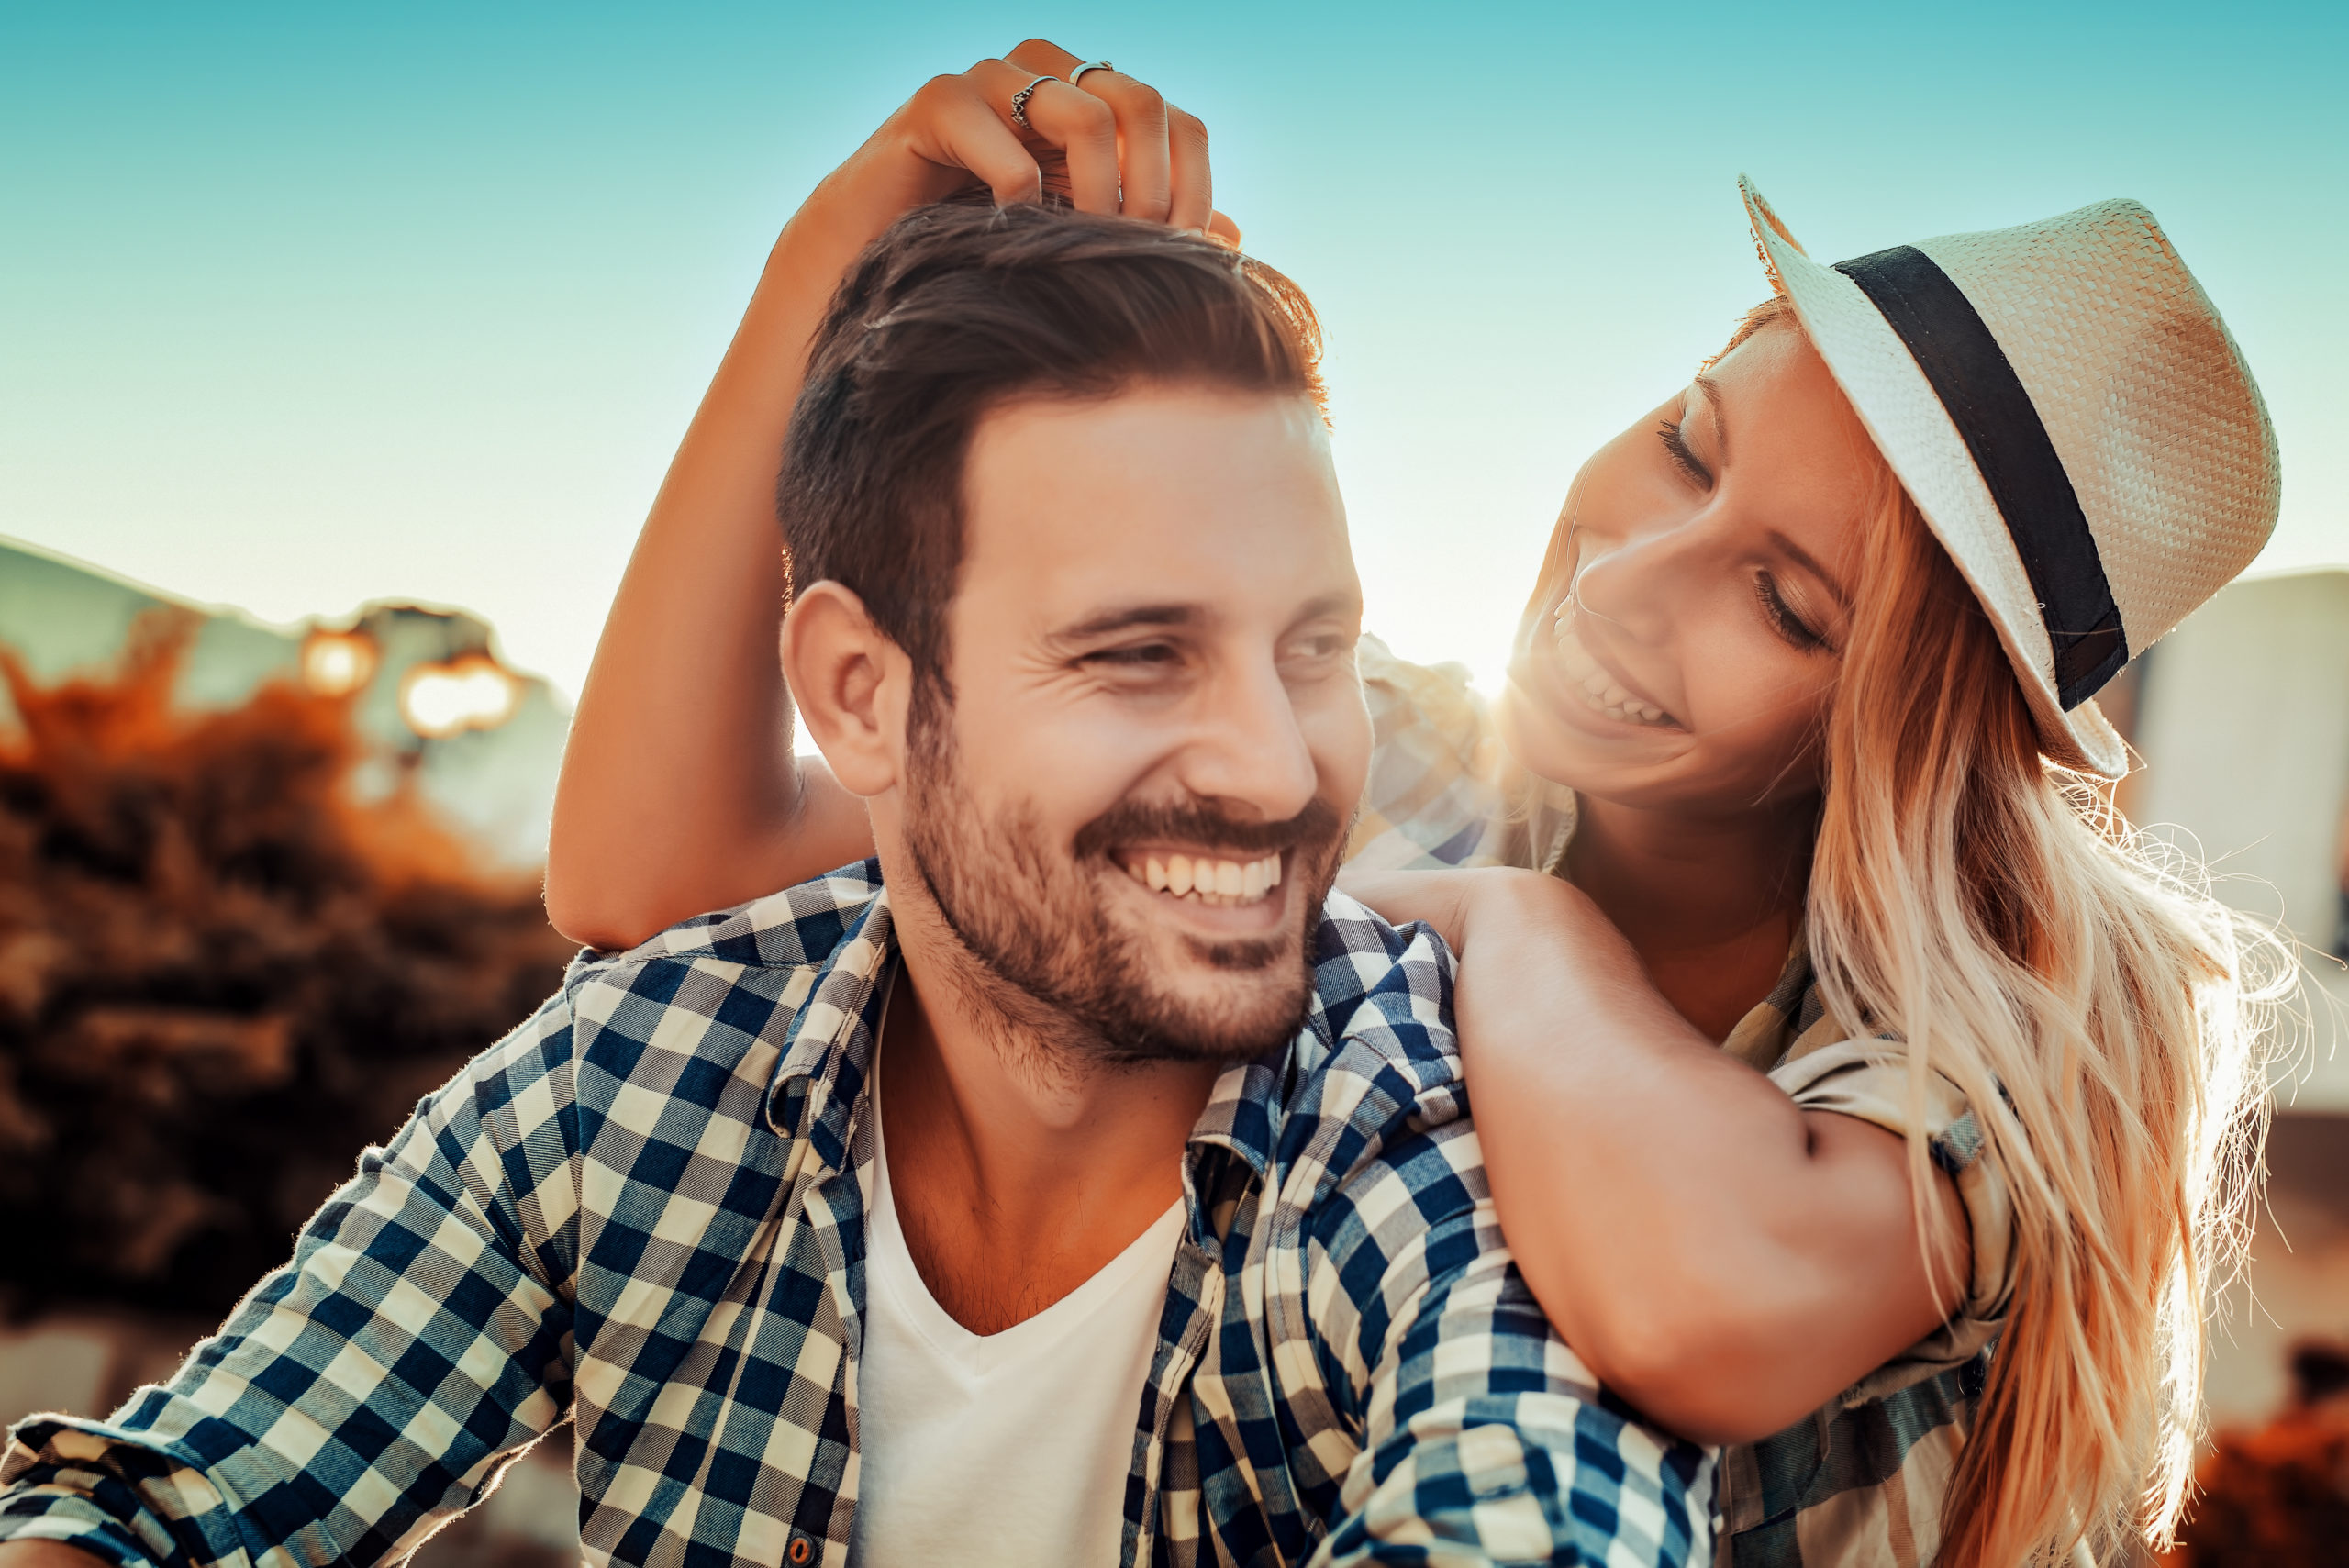 Smiling,Couple,In,Love,Outdoors